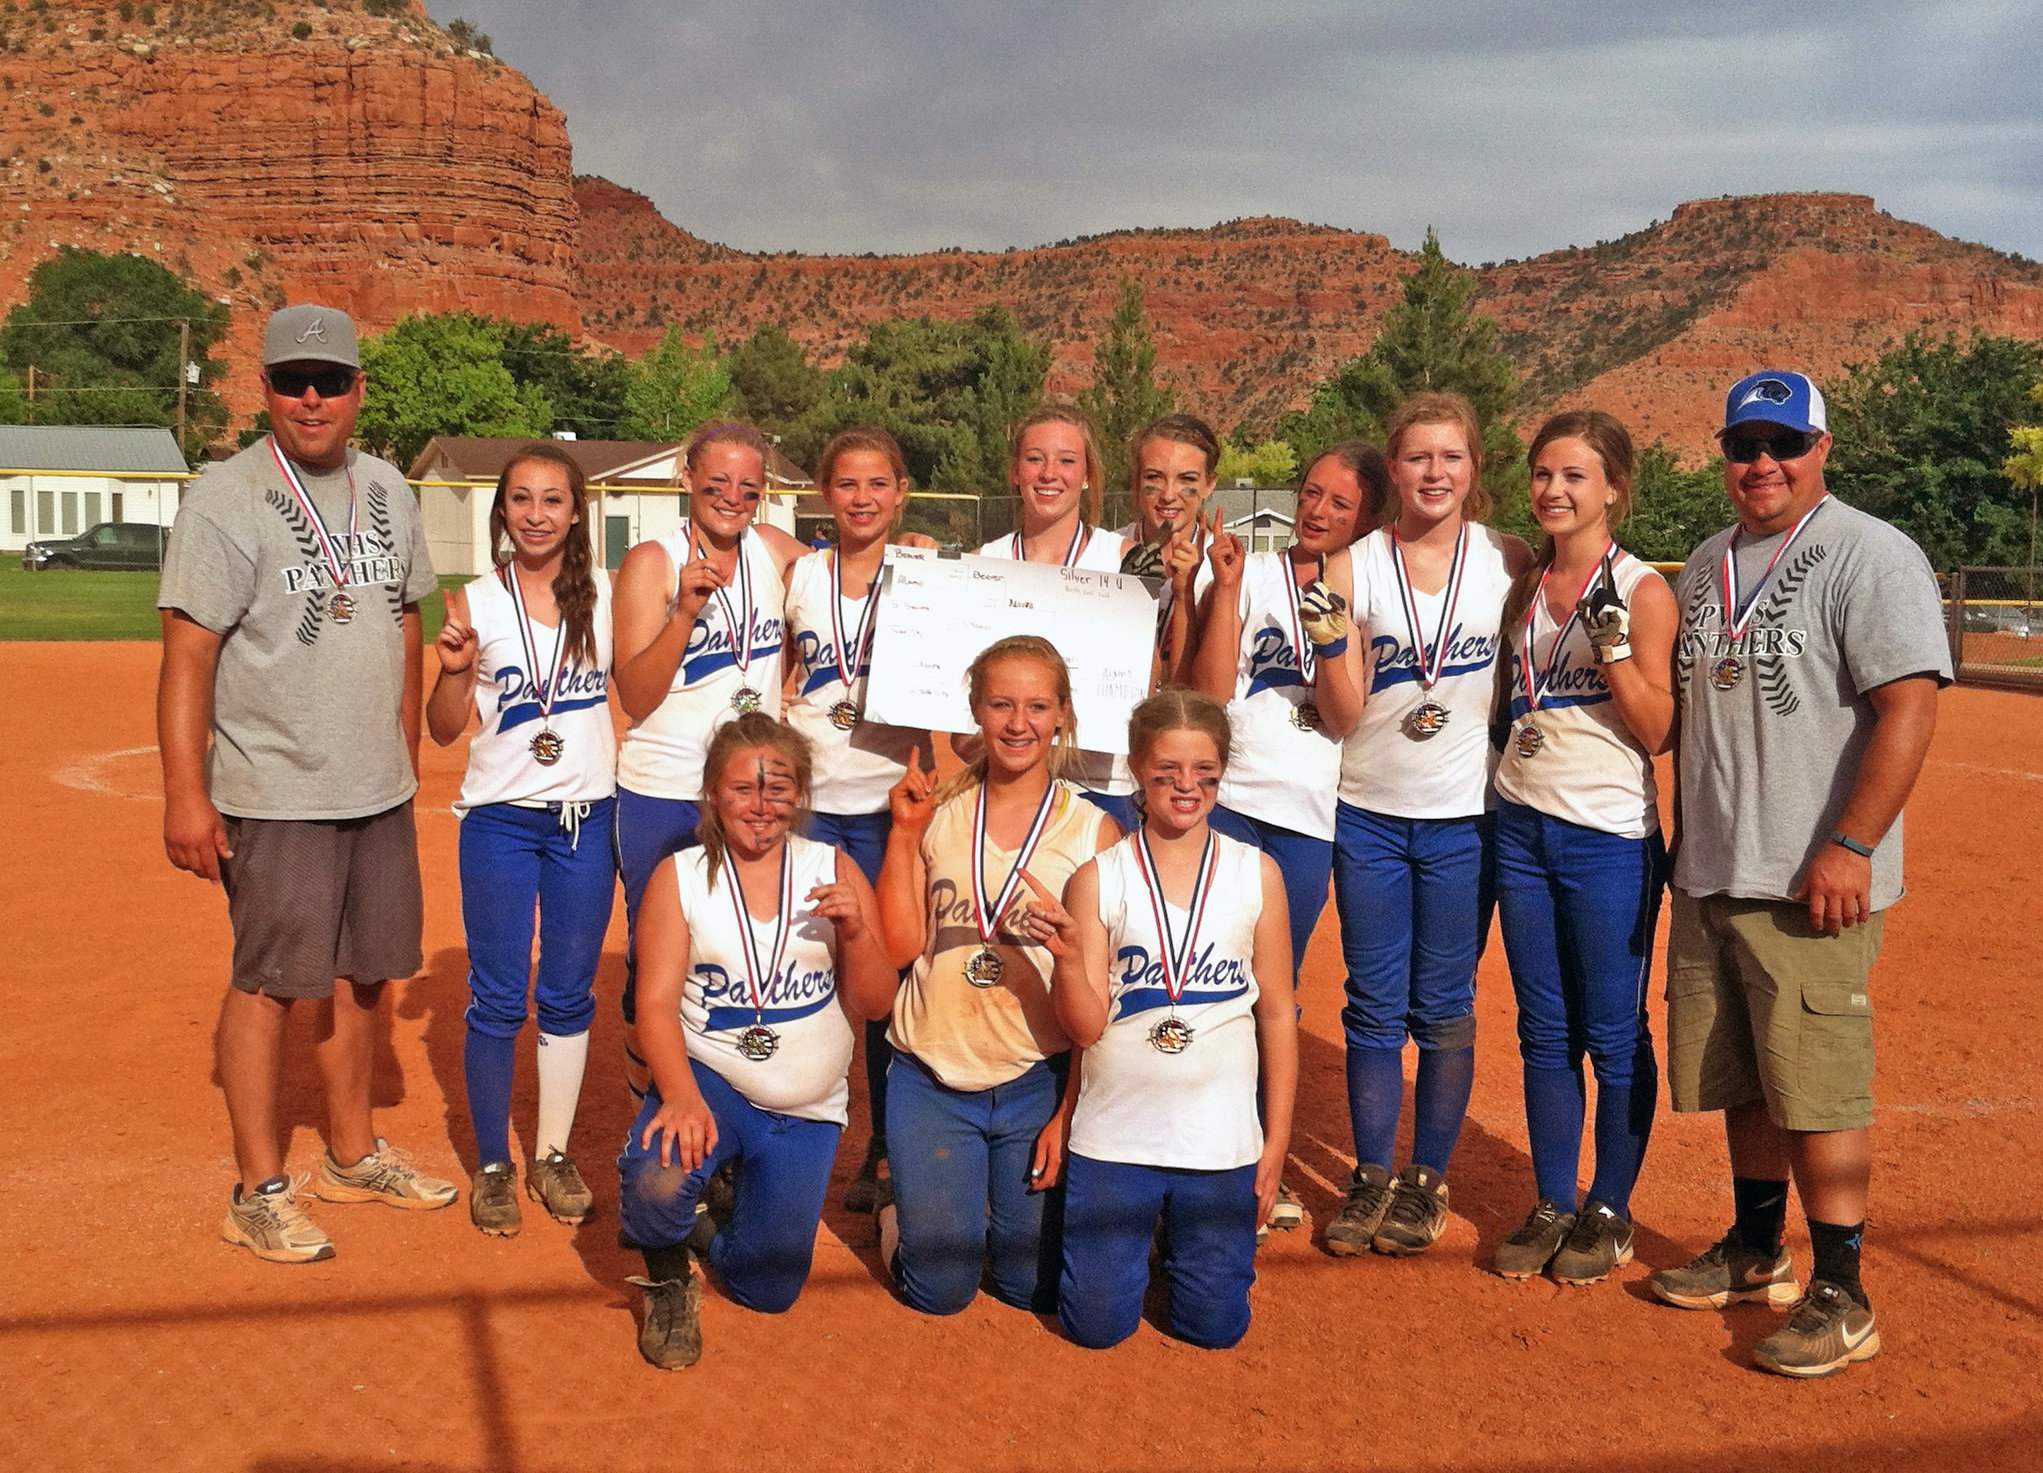 PV Middle School softball team wins tourney